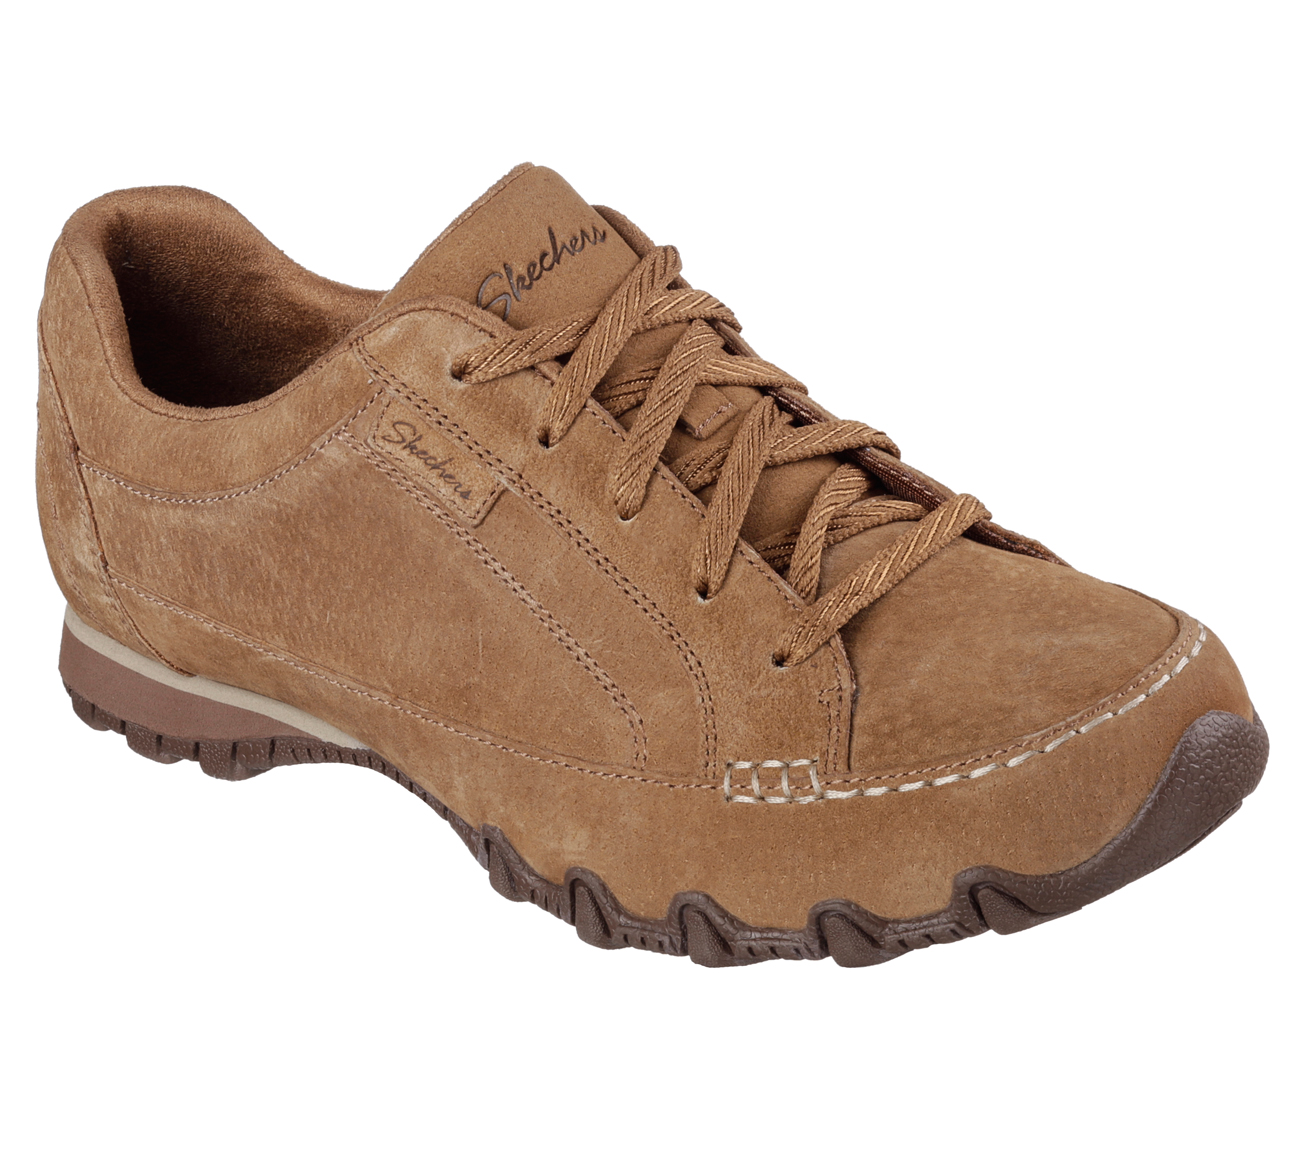 Buy Skechers Relaxed Fit Bikers Curbed Modern Comfort